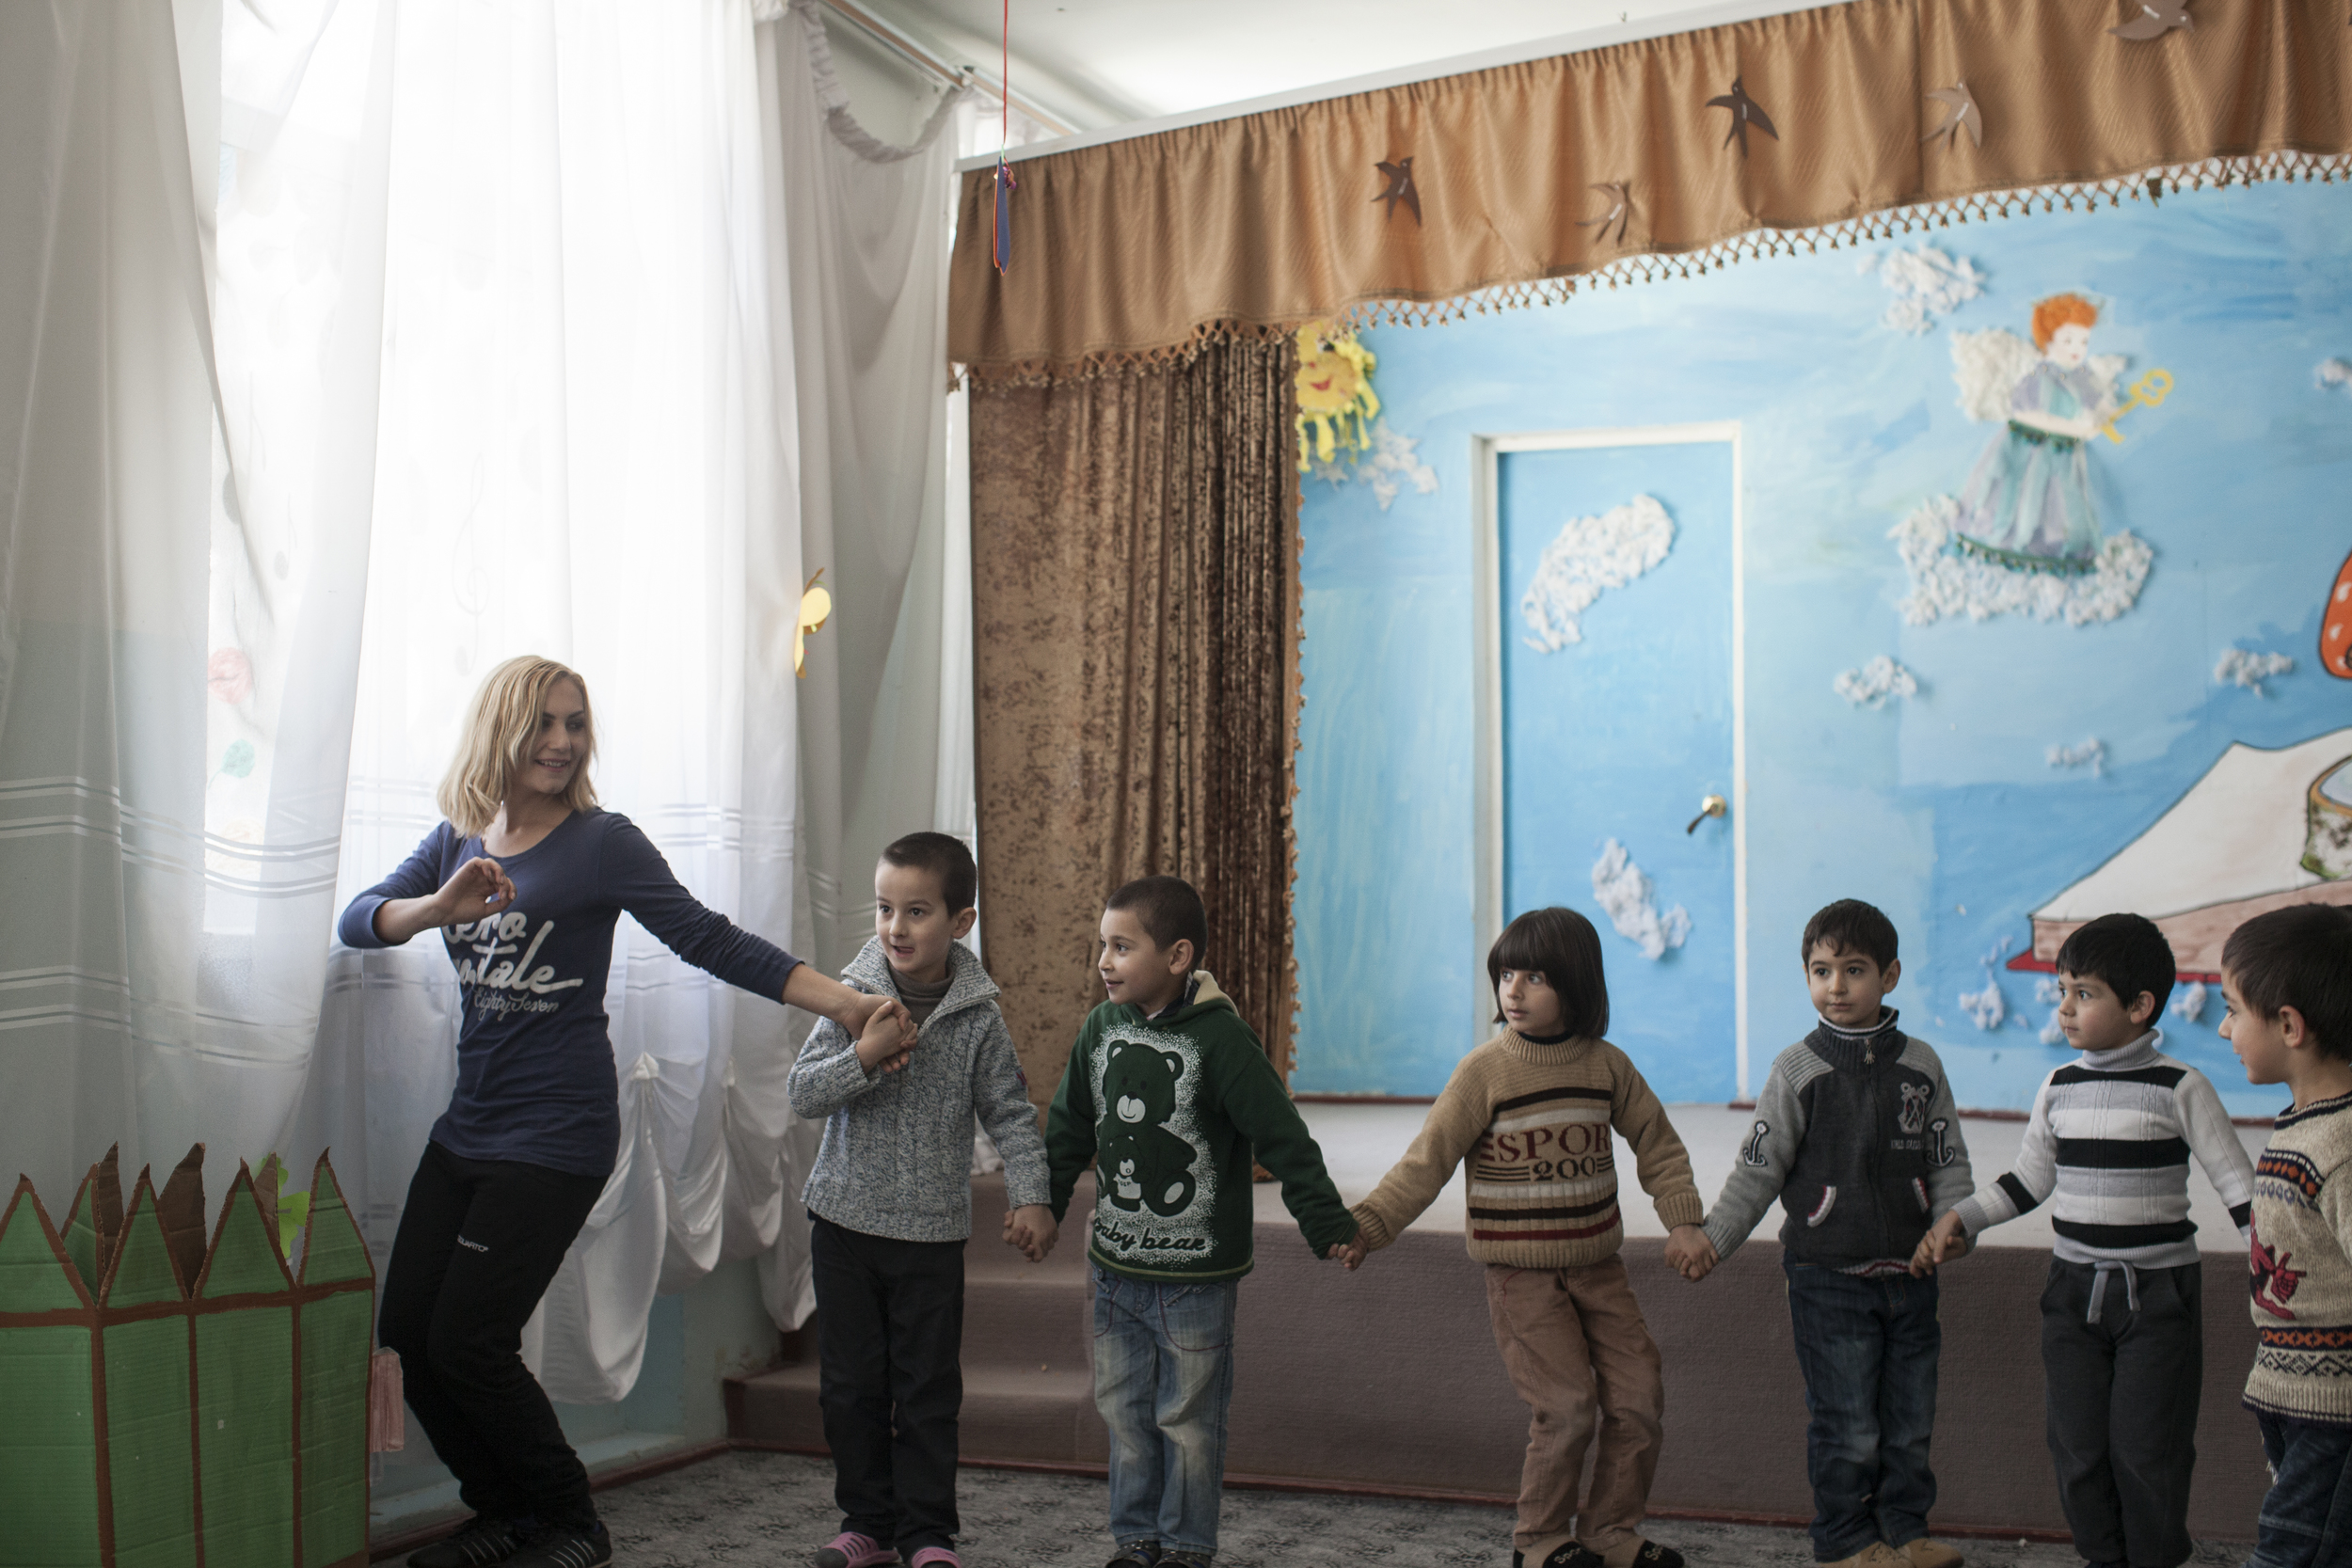 Avo and his classmates practice traditional Armenian dance at school.